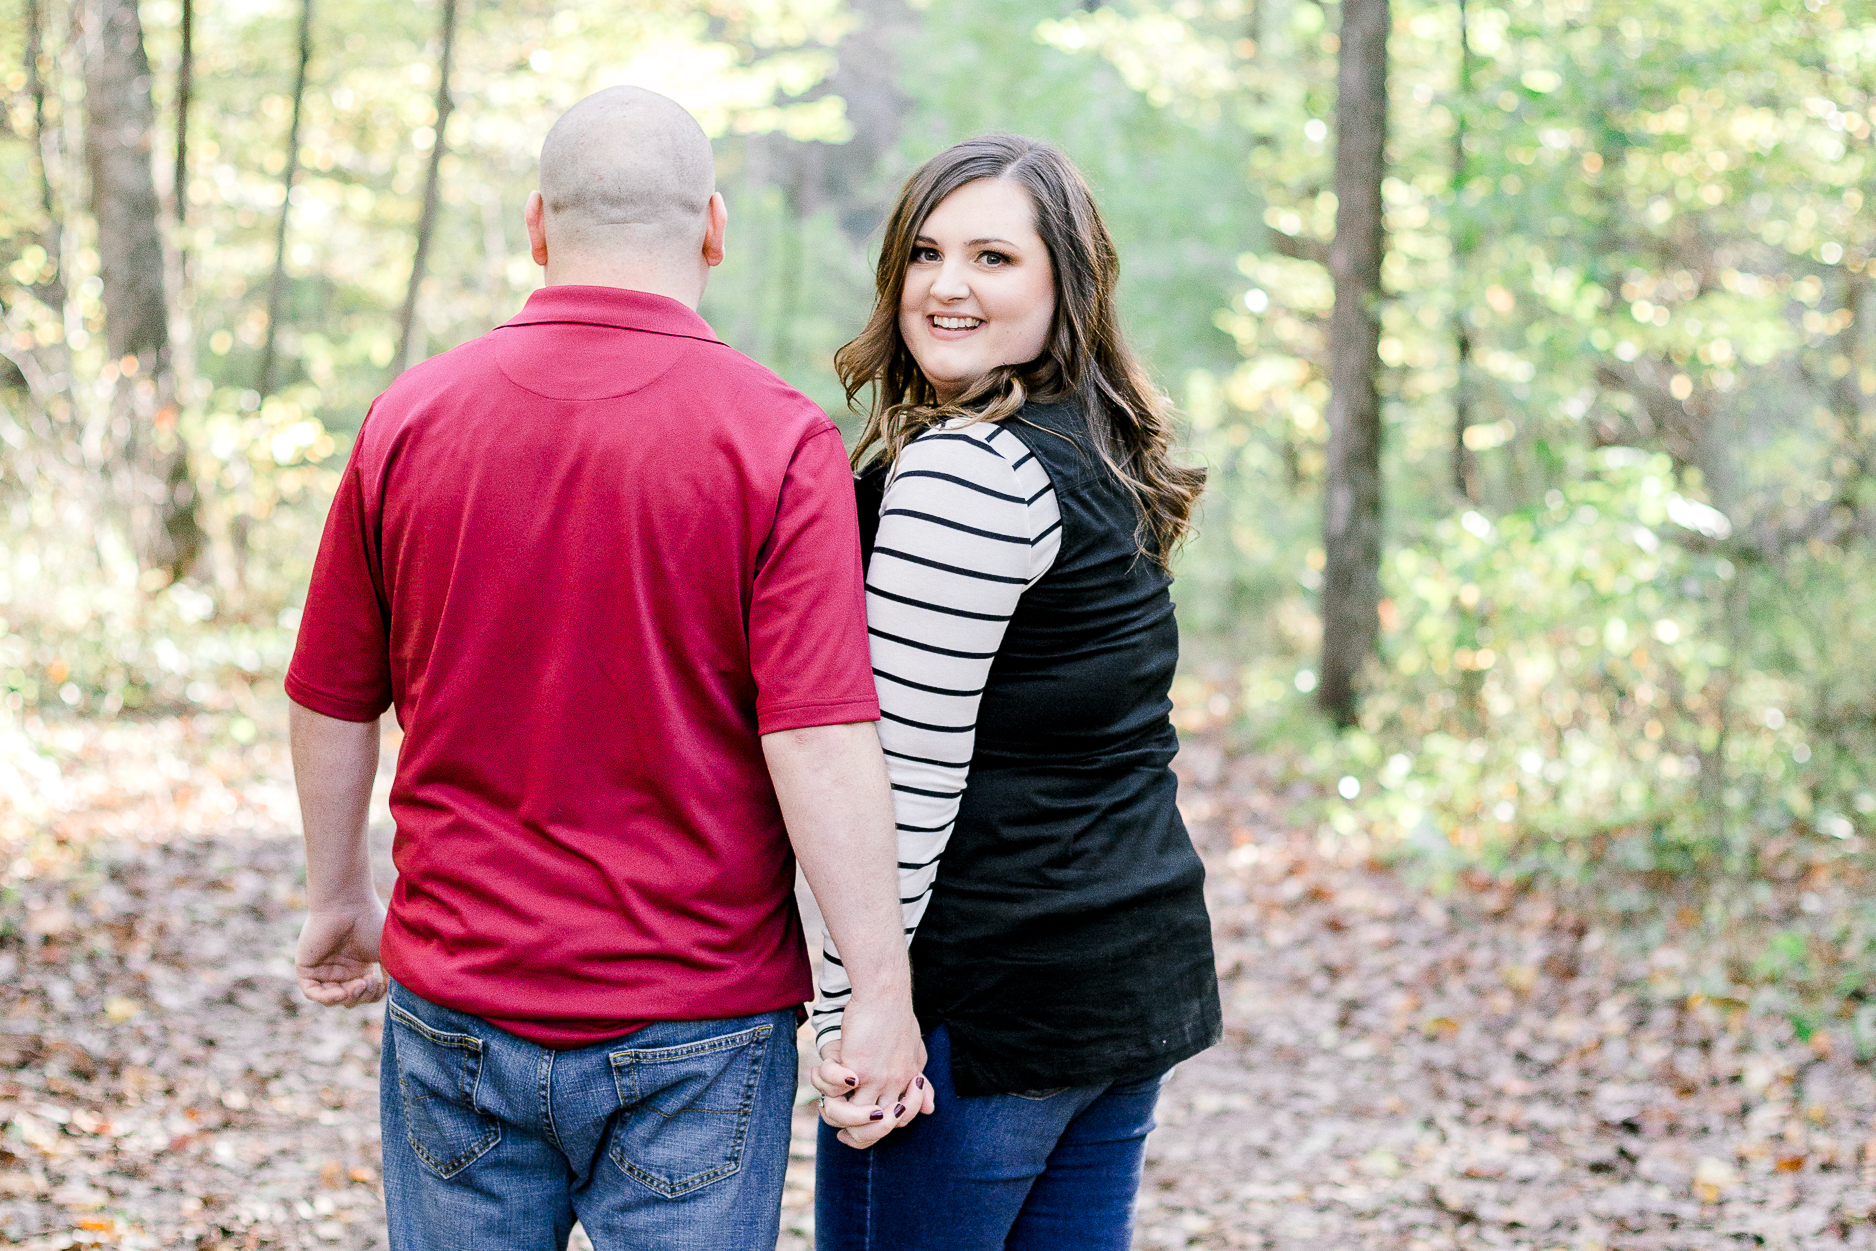 Jacobsburg State Park Nazareth Pennsylvania Woodsy Fall Engagement Session wedding and lifestyle photographer Lytle Photo Co (1 of 1).jpg